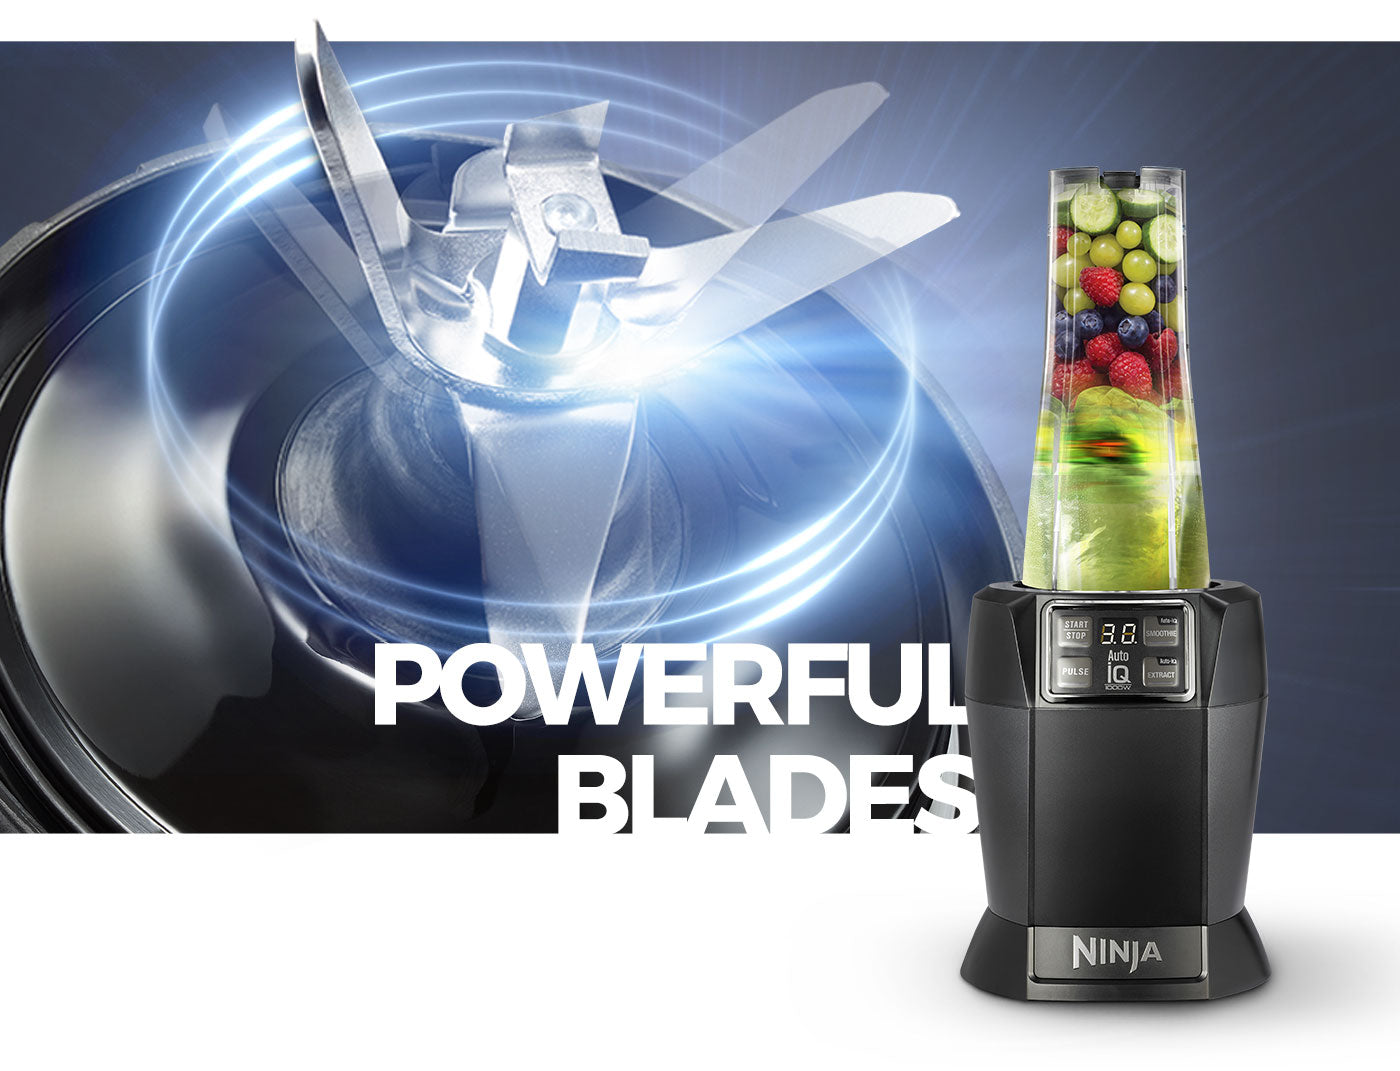 powerful blades